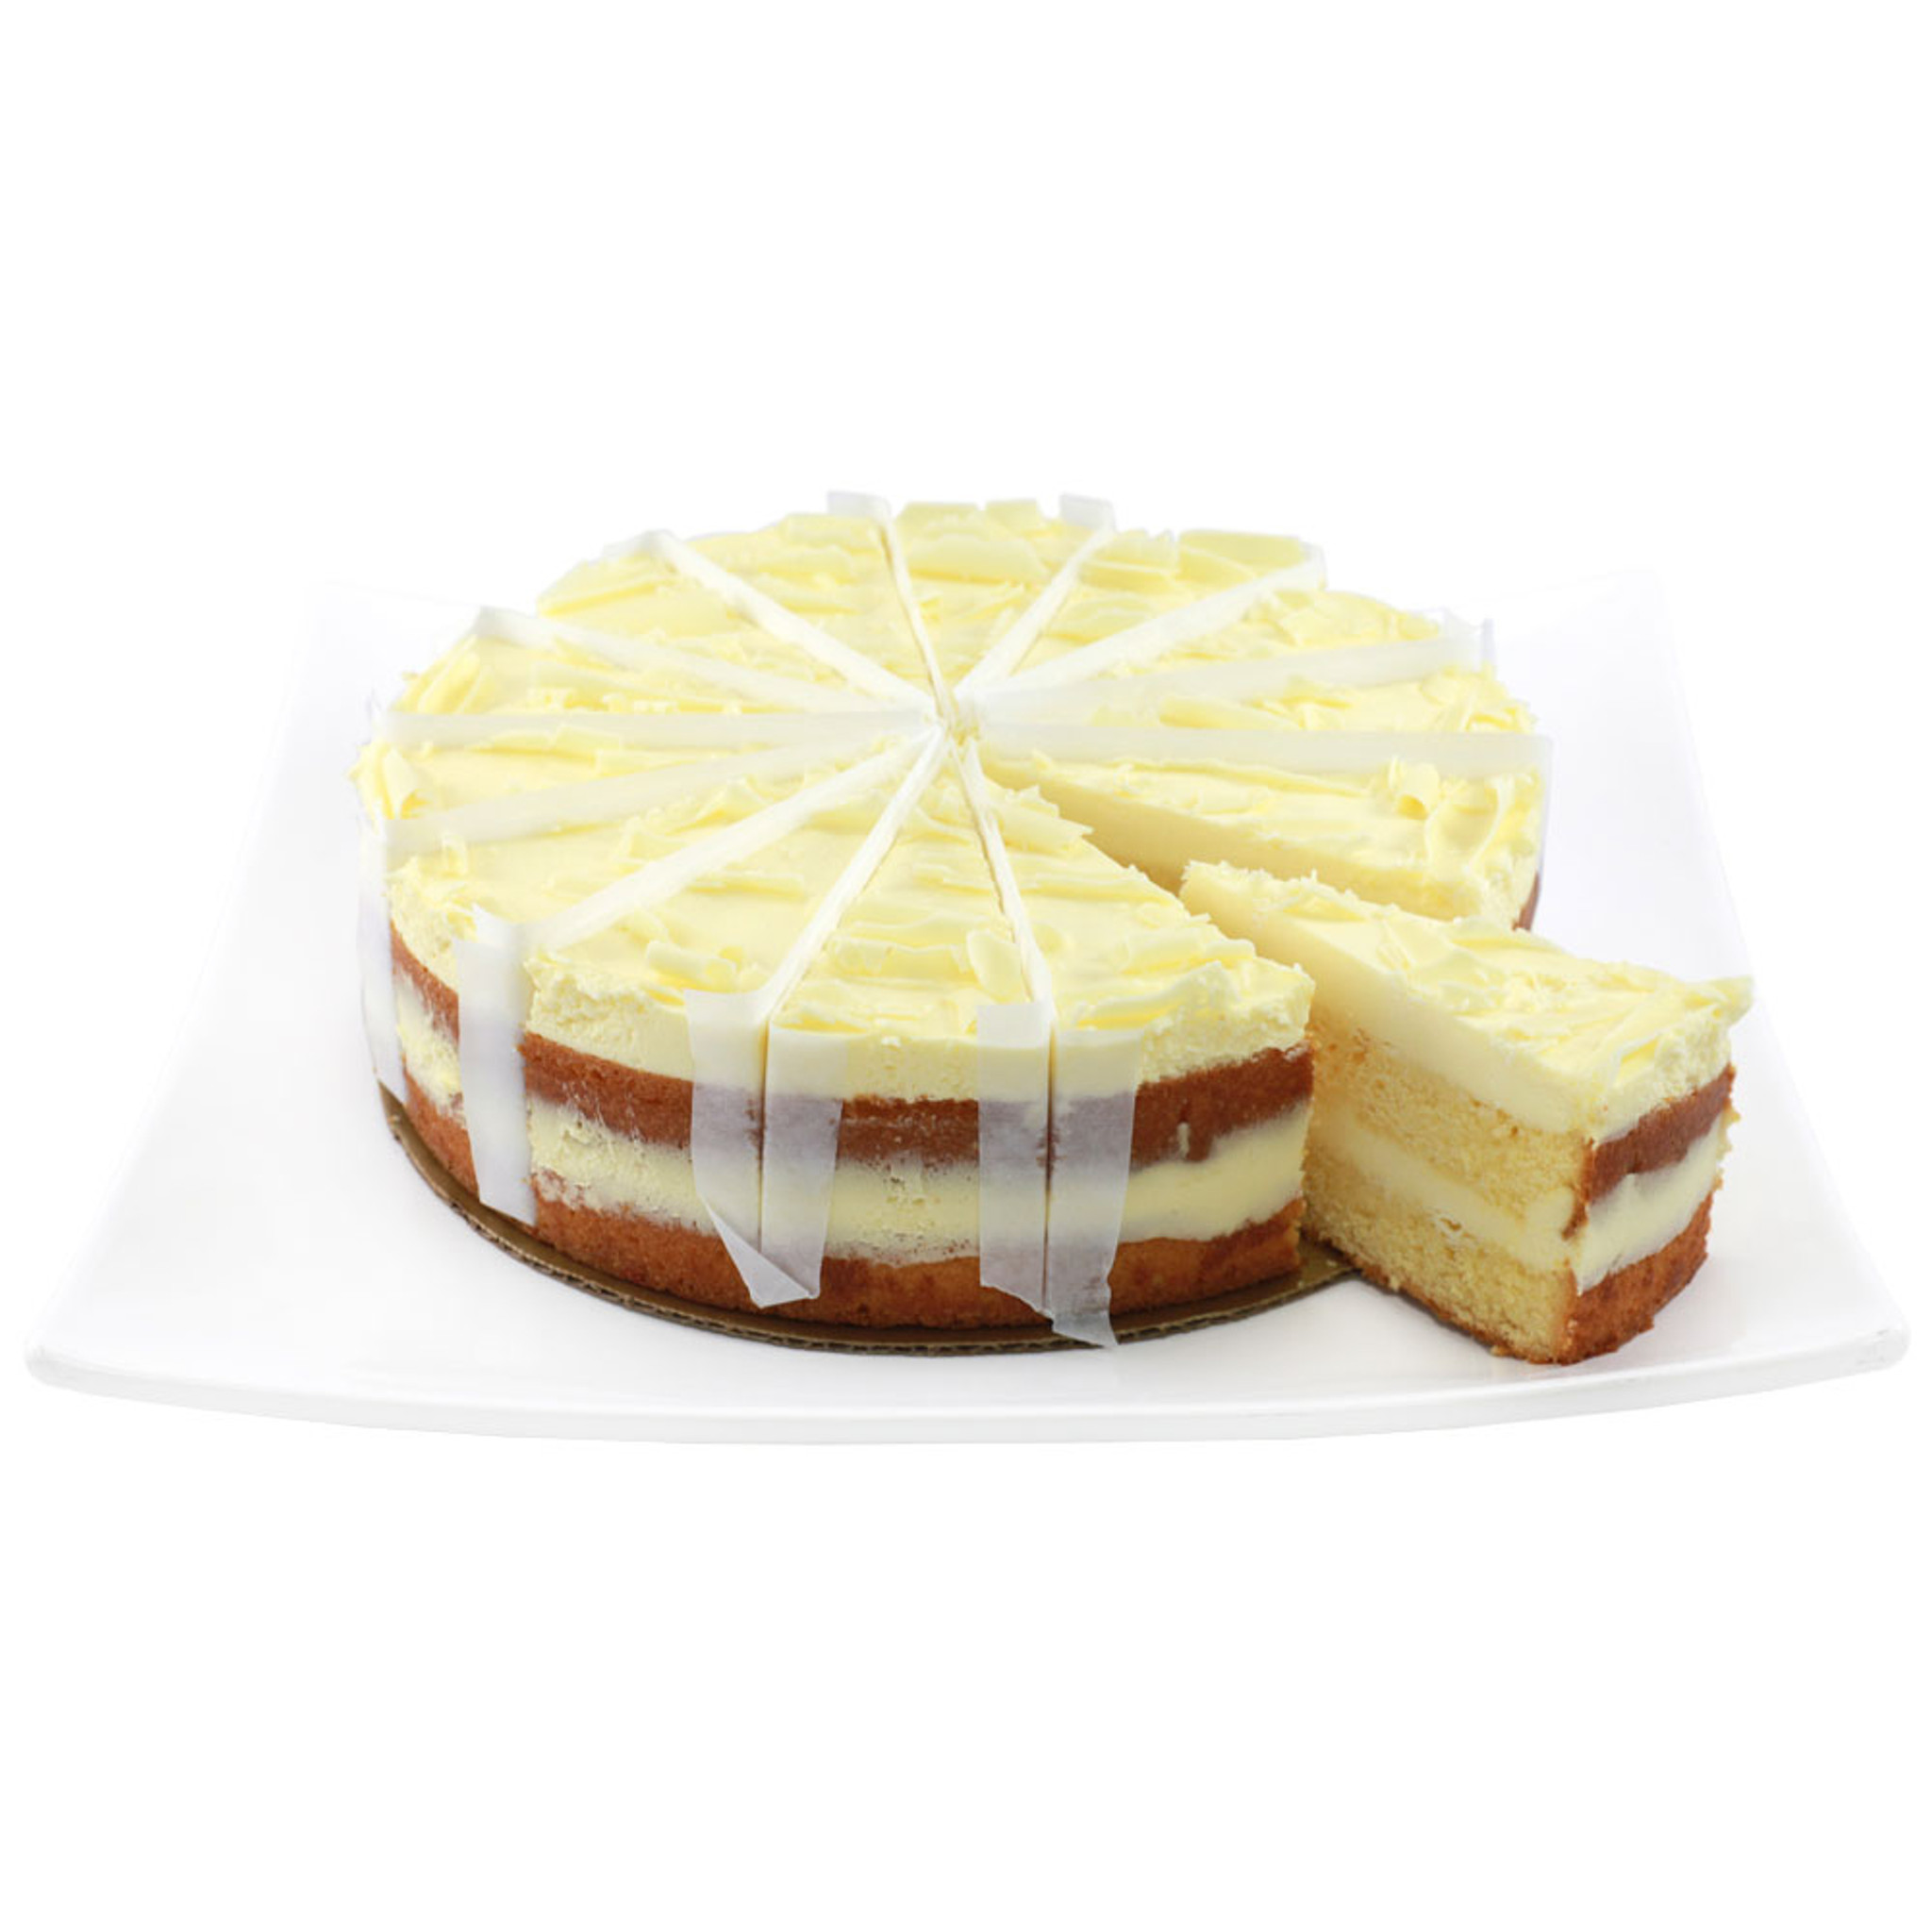 Limoncello Mascarpone Cake 14 Slices Frozen 10 Ace Endico To Go